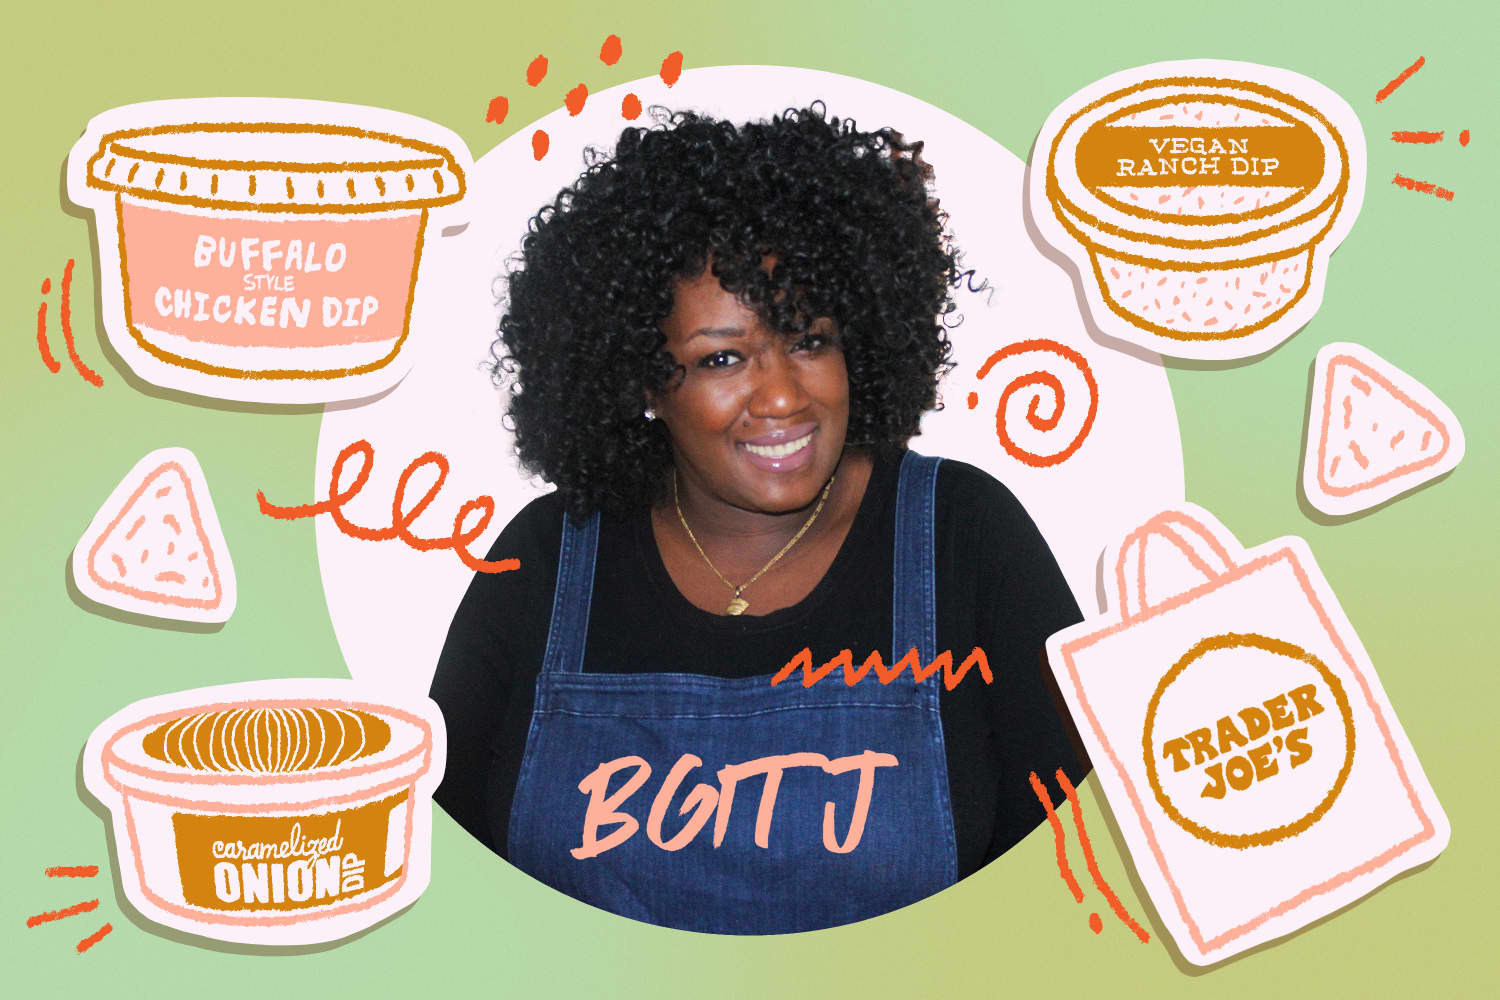 The 10 Best Dips at TJ's, According to the Creator of Black Girls in Trader Joe's